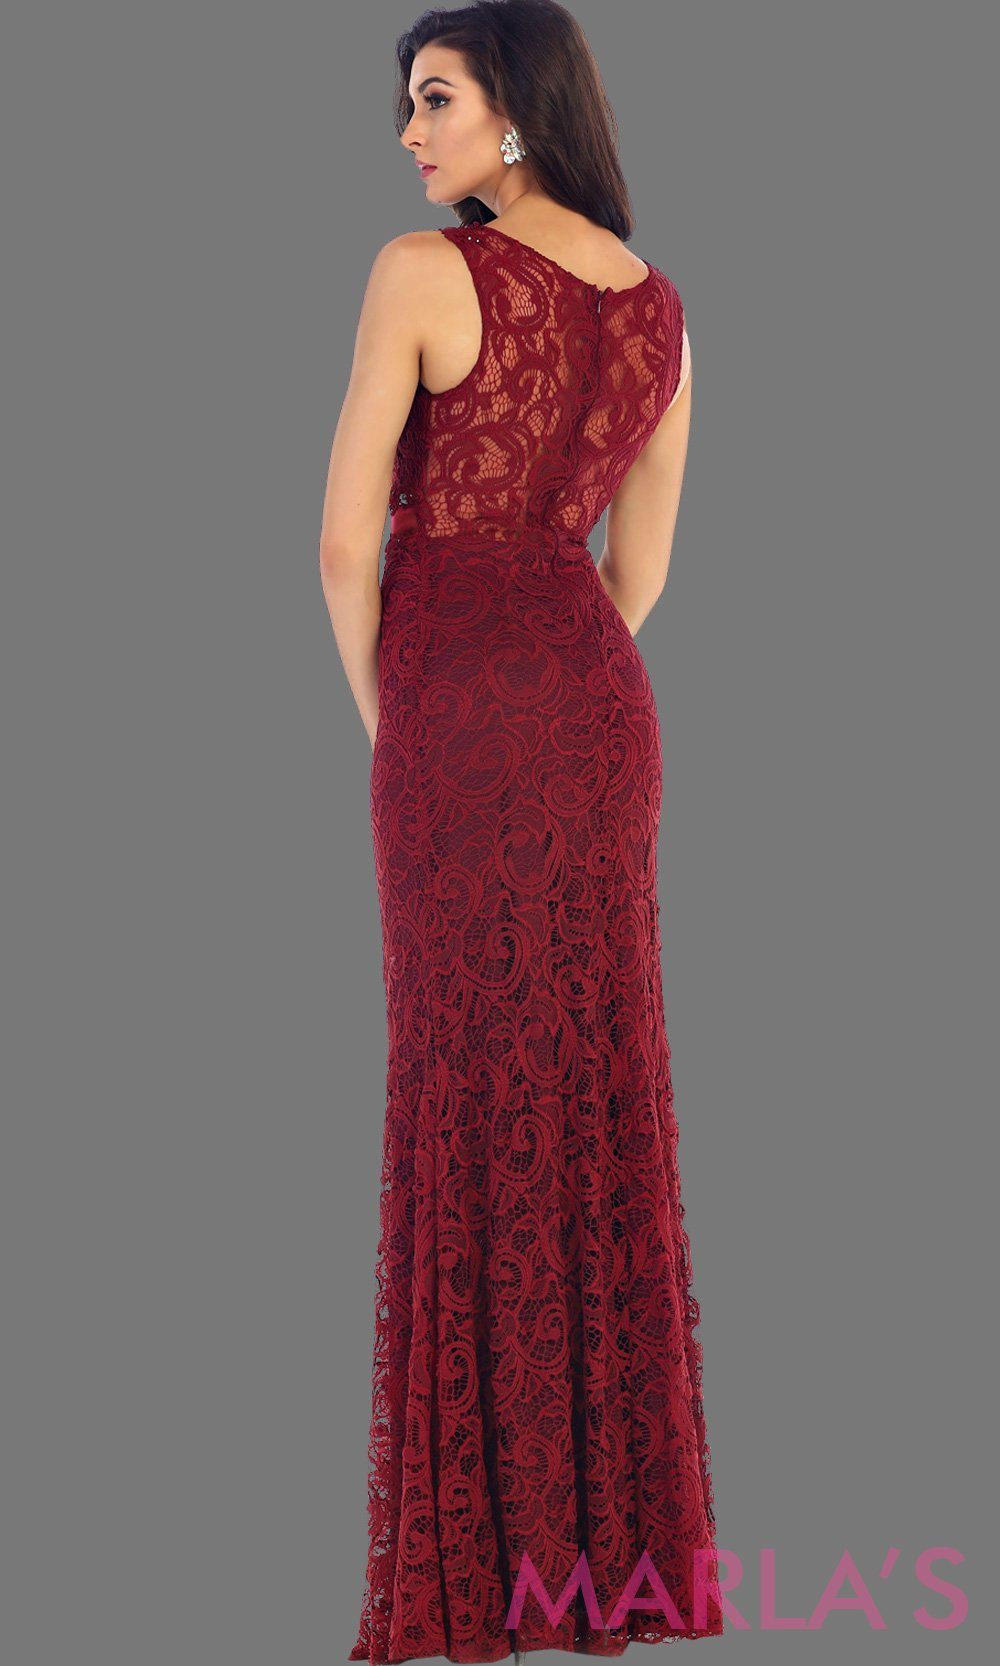 Back of long simple burgundy red two piece dress. This dark r dress is a perfect long prom dress. The red illusion neckline and waist creates a two piece prom look. Can be worn as a wedding guest dress, worn at a formal event or gala. Available in plus sizes